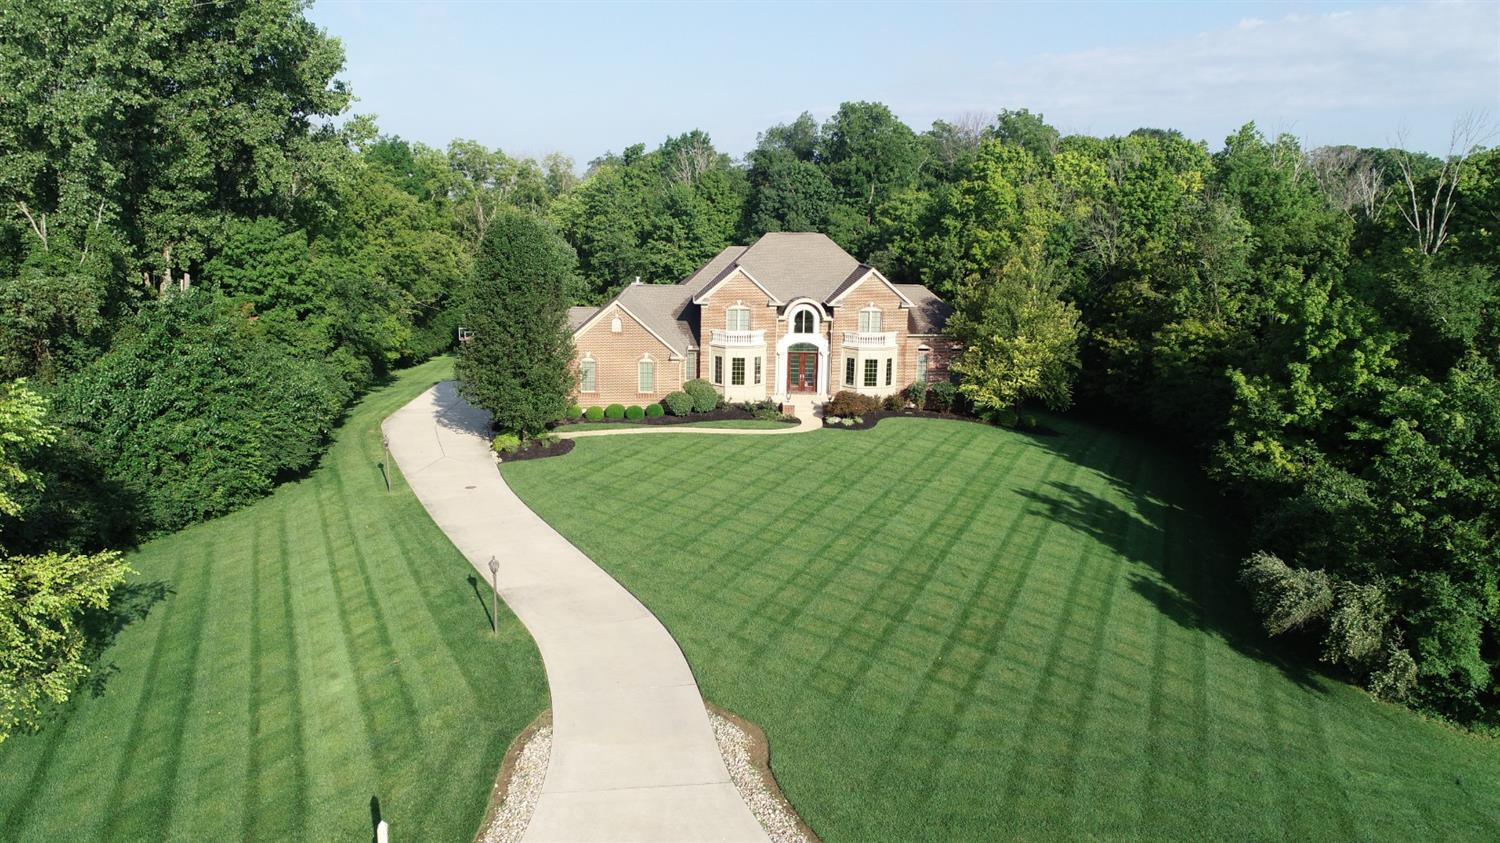 369 Aspen Ridge Dr Turtle Creek Twp., OH